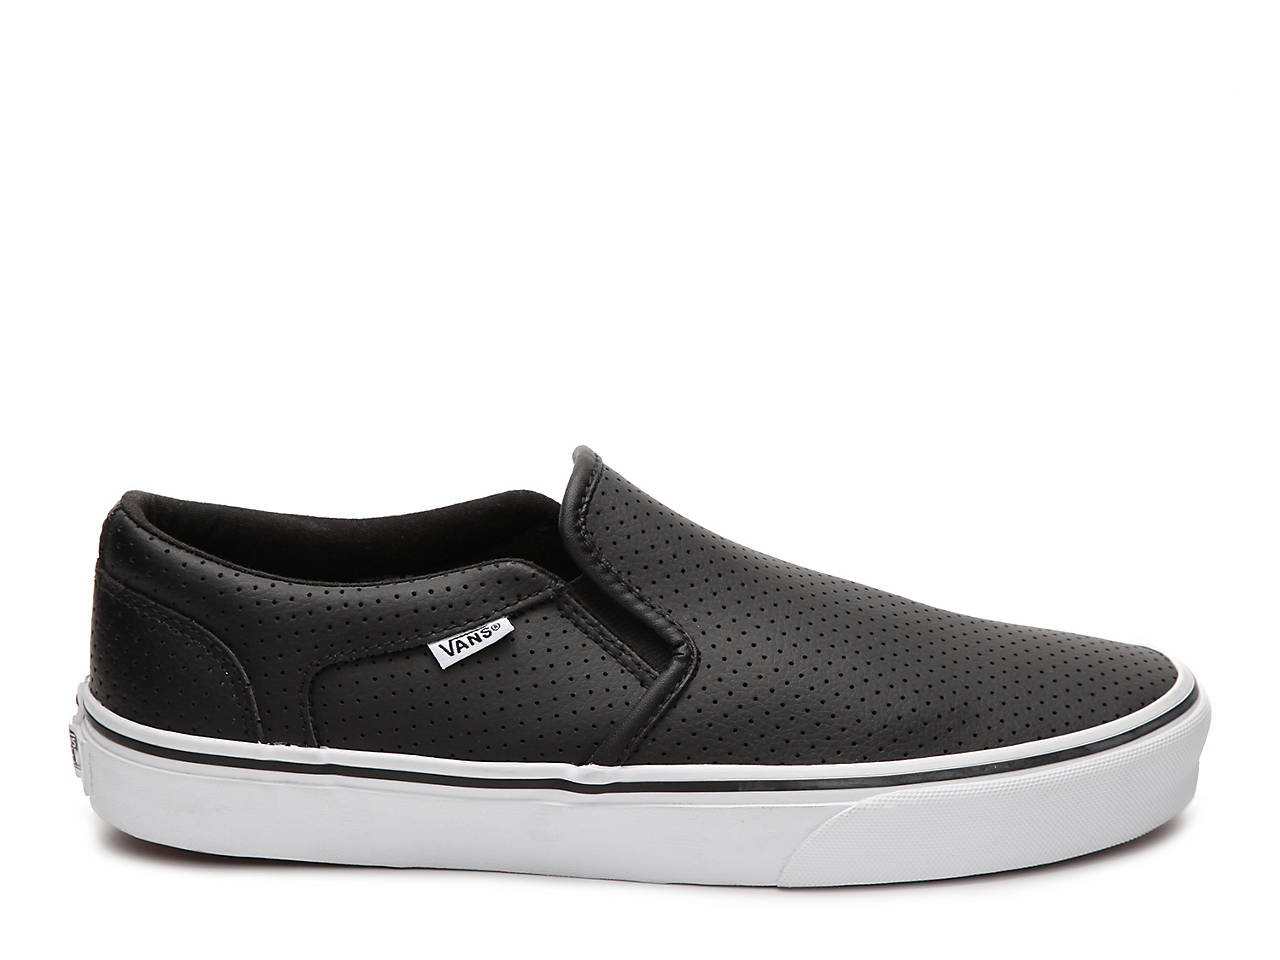 Vans Asher Perforated Leather Slip-On Sneaker - Men s Men s Shoes  adb0b07a120f